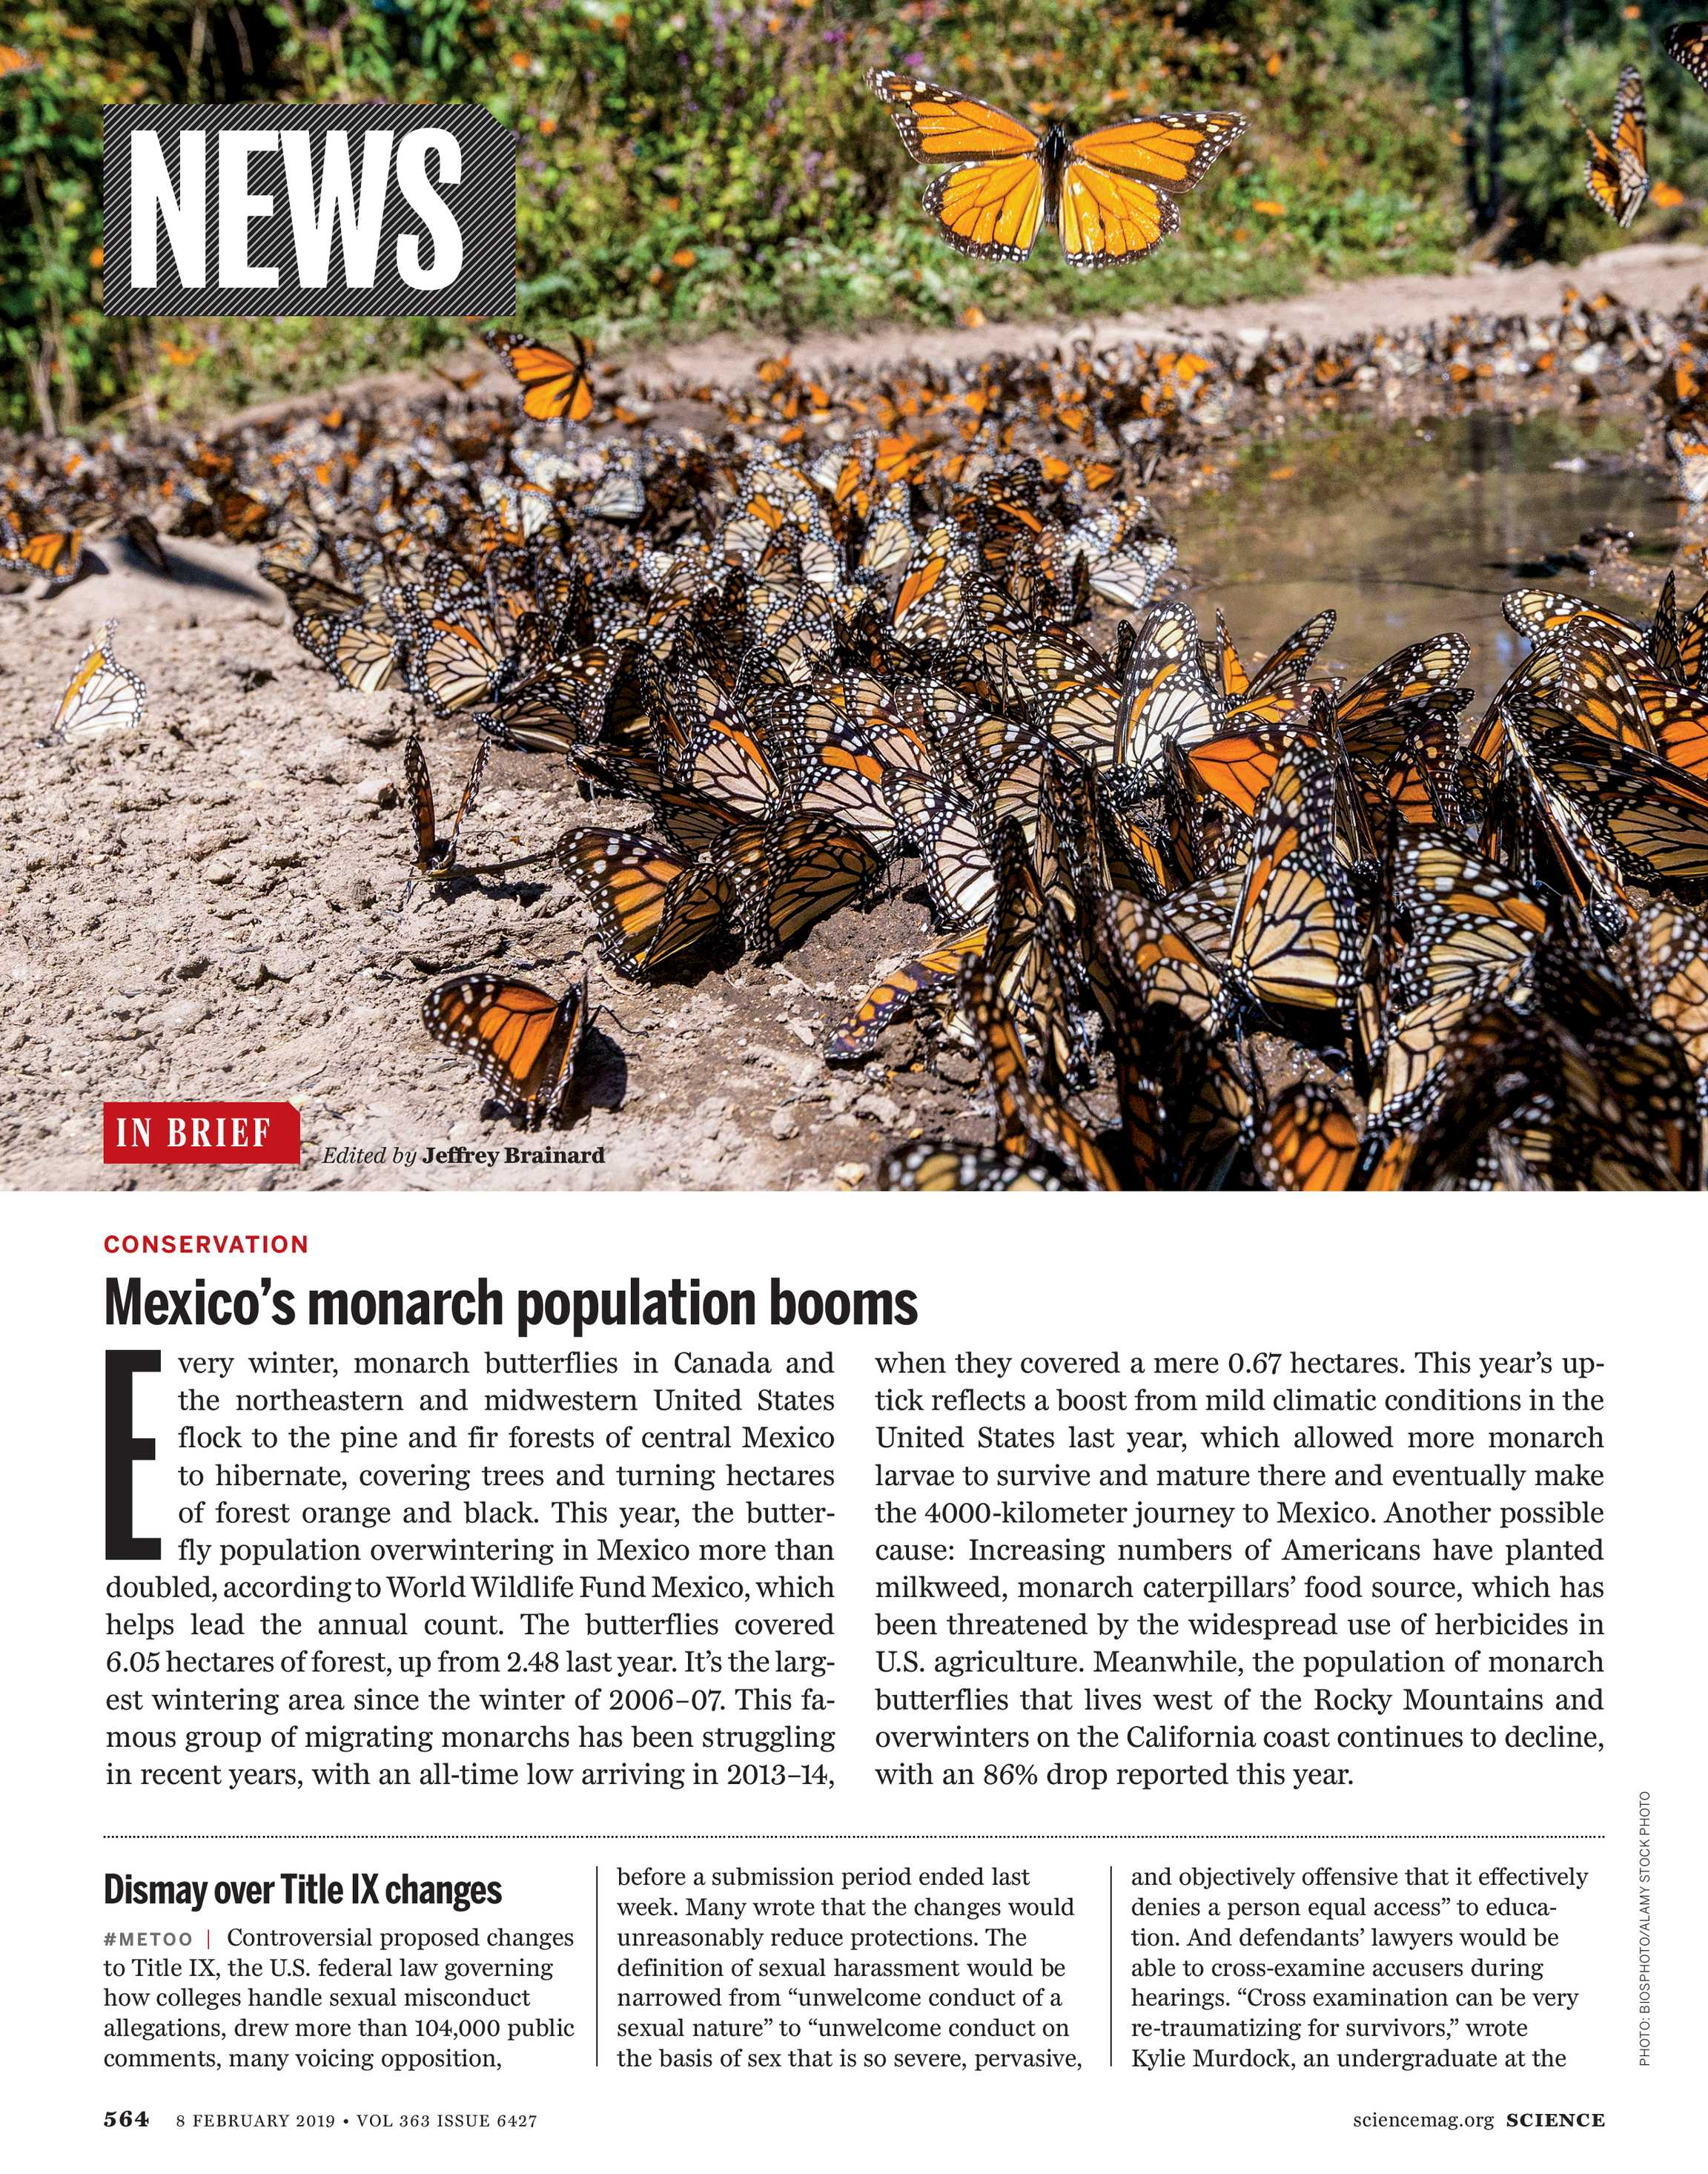 Science Magazine - February 8, 2019 - page 564